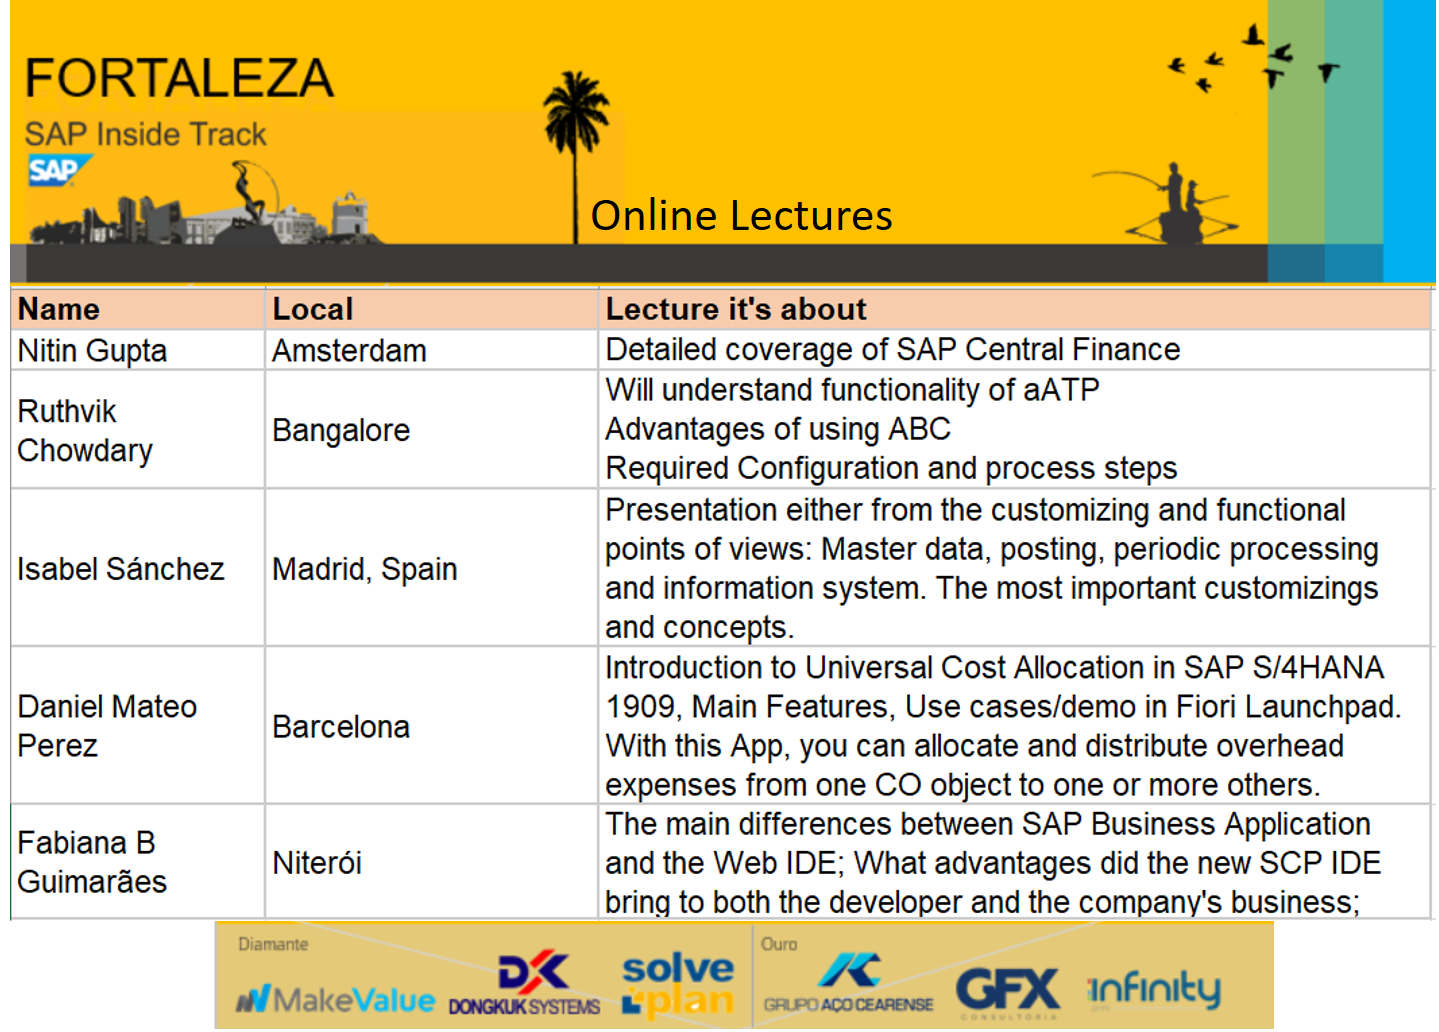 SITFOR%20-%20Online%20Lectures